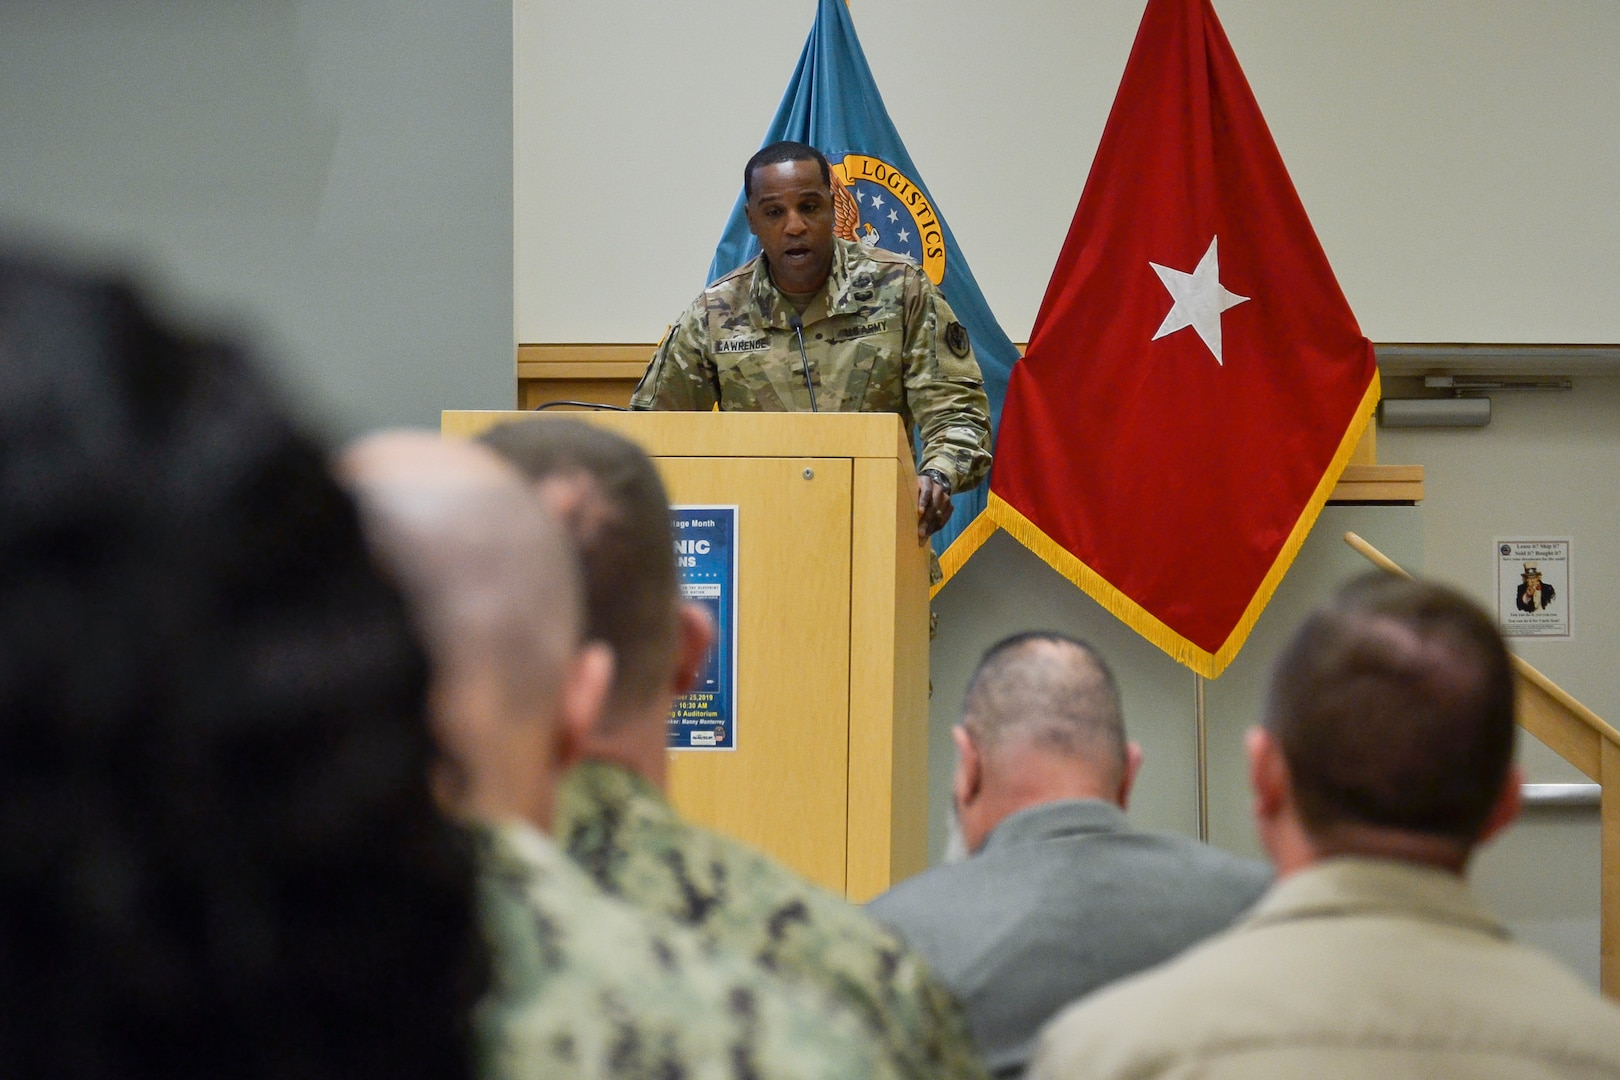 Army Brig. Gen. Gavin Lawrence, DLA Troop Support Commander, speaks at the annual Hispanic Heritage Month celebration Sept. 25, 2019 in Philadelphia.  Troop Support and Naval Supply Systems Command Weapon Systems Support employees celebrated the culture and traditions of Hispanic Americans during a National Hispanic Heritage Month program.